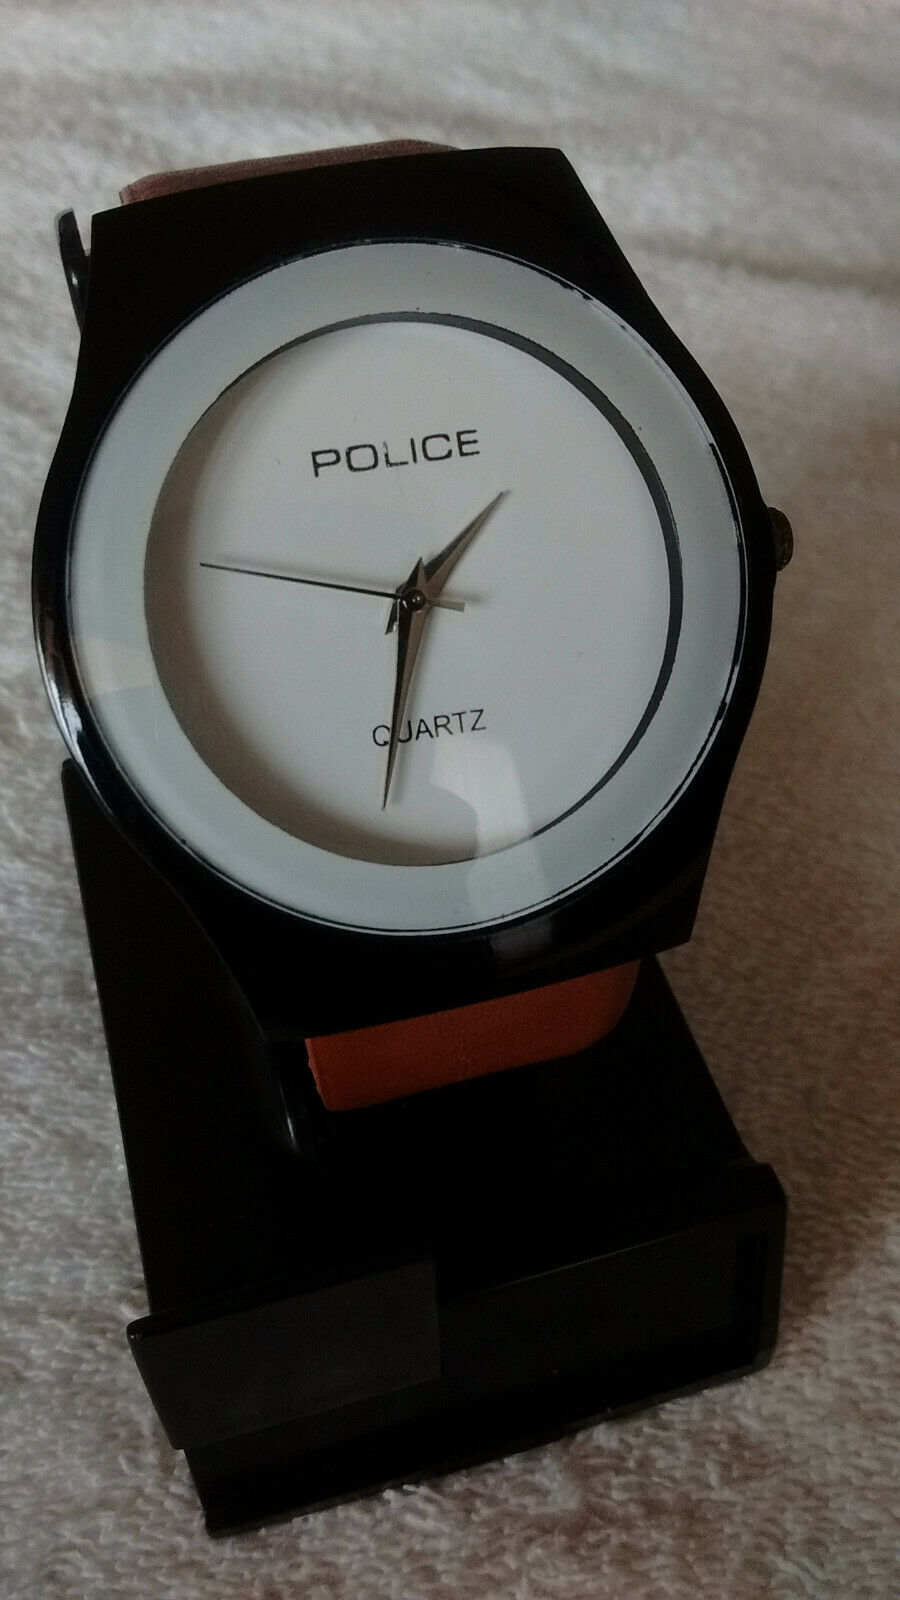 POLICE brand MEN S MODERN DESIGN DRESS/CASUAL WATCH - $59.95